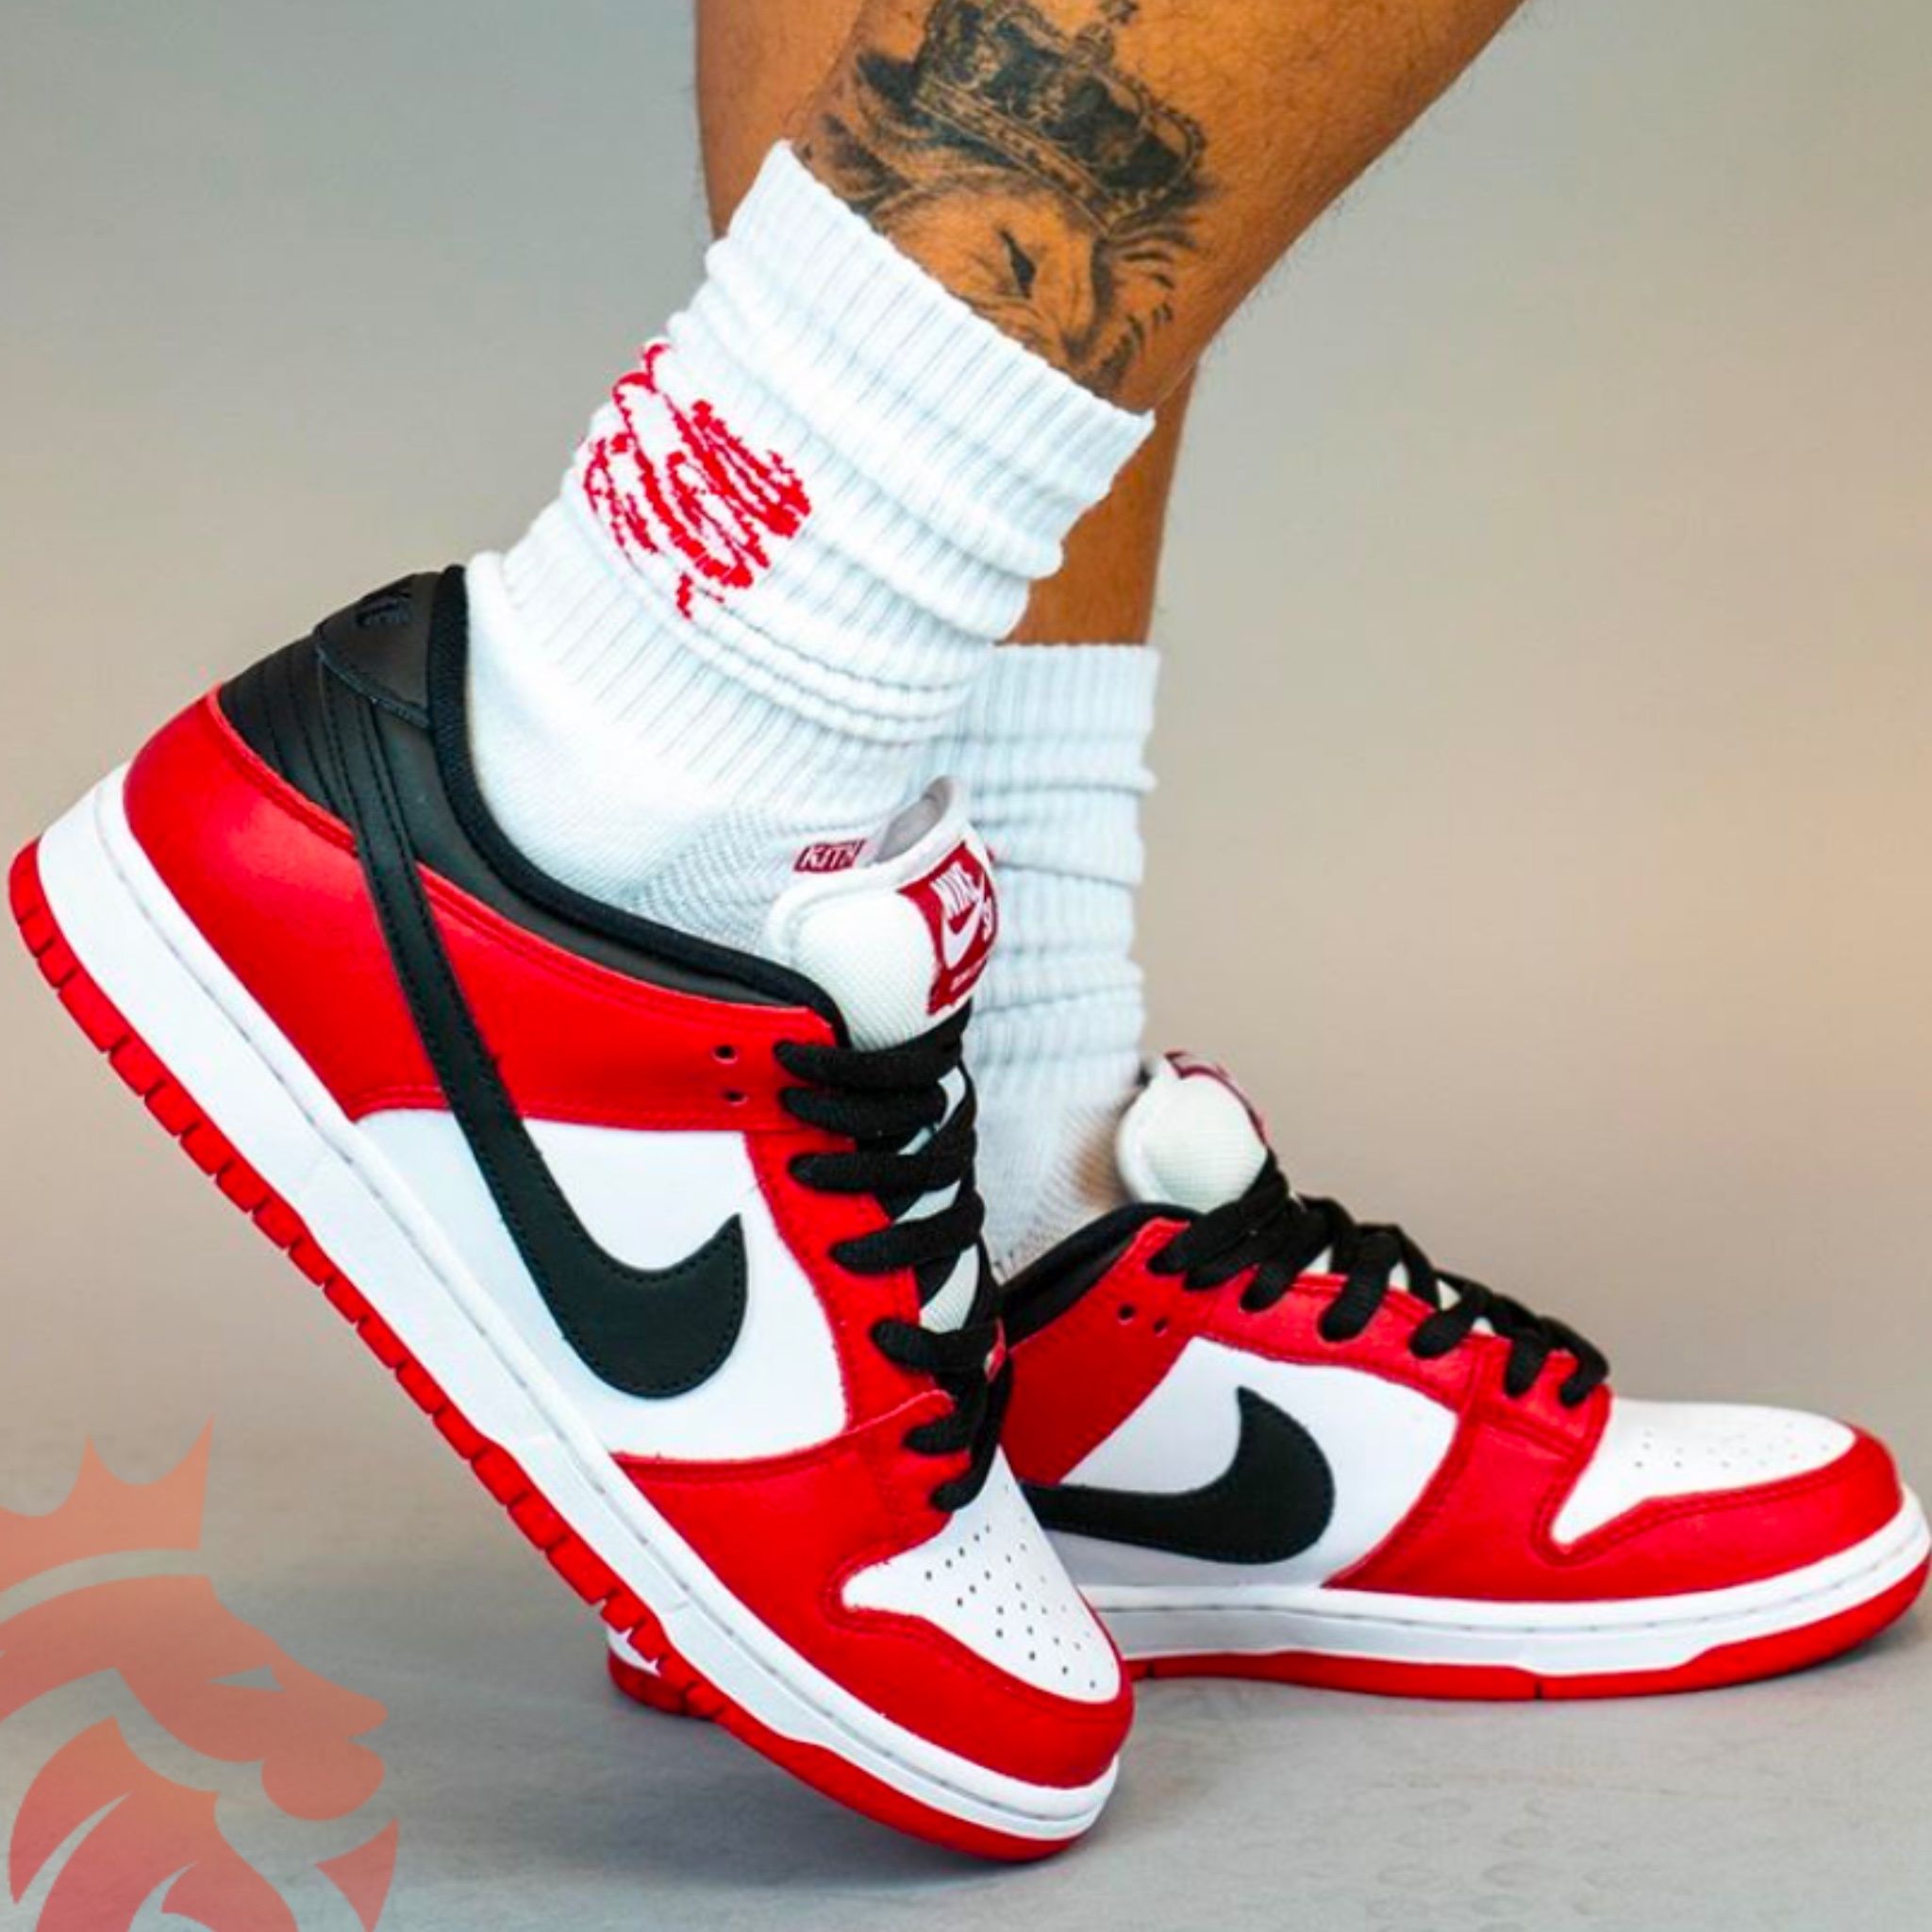 Yankeekicks On Feet Nike SB Dunk Low Pro Chicago BQ6817-600 Varsity Red/White-Varsity Red-Black